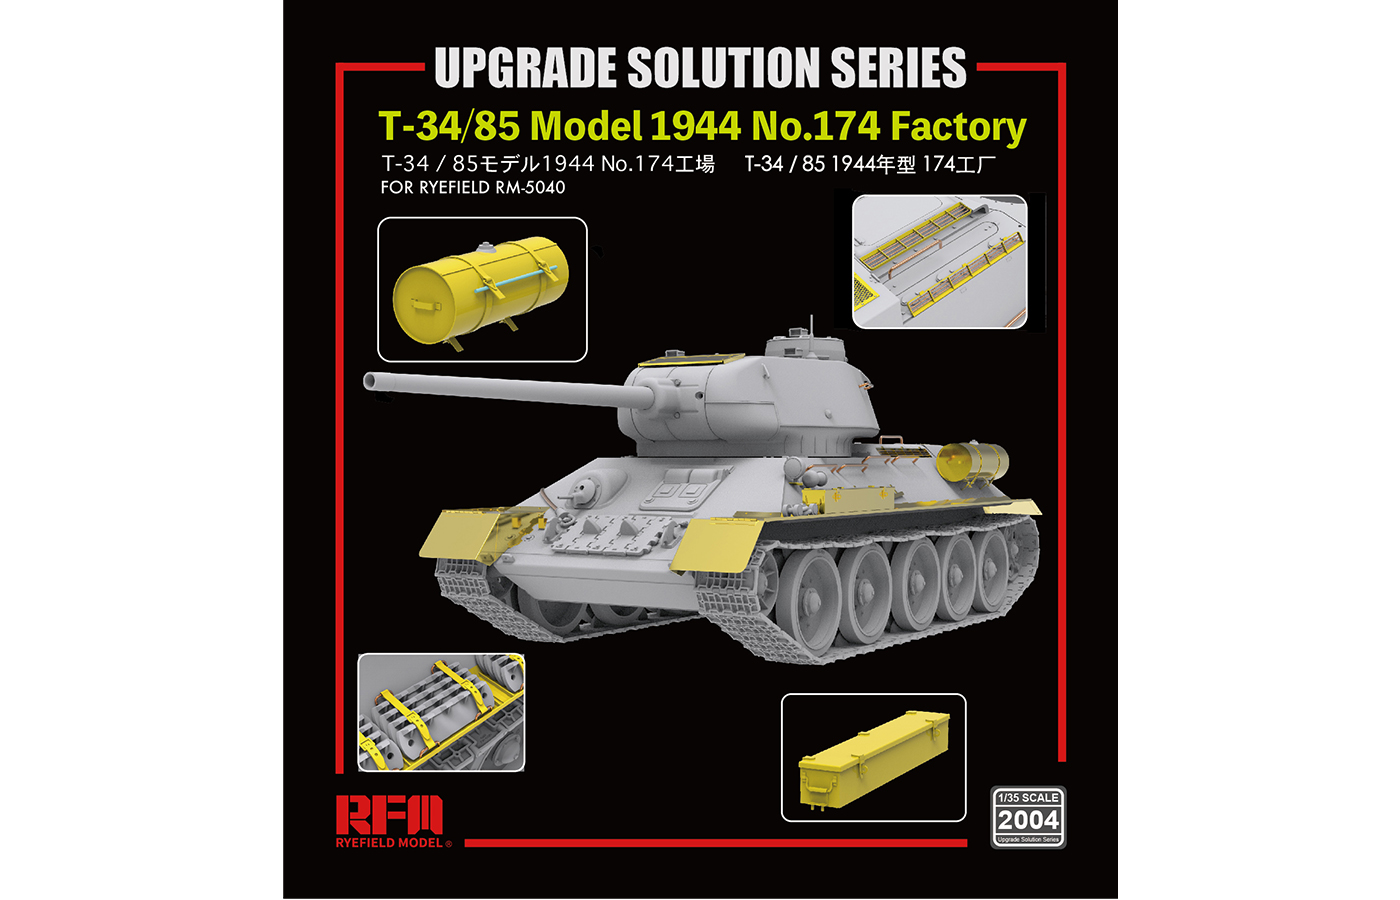 RM-2004 T-34/85 UPGRADE SOLUTION SERIES